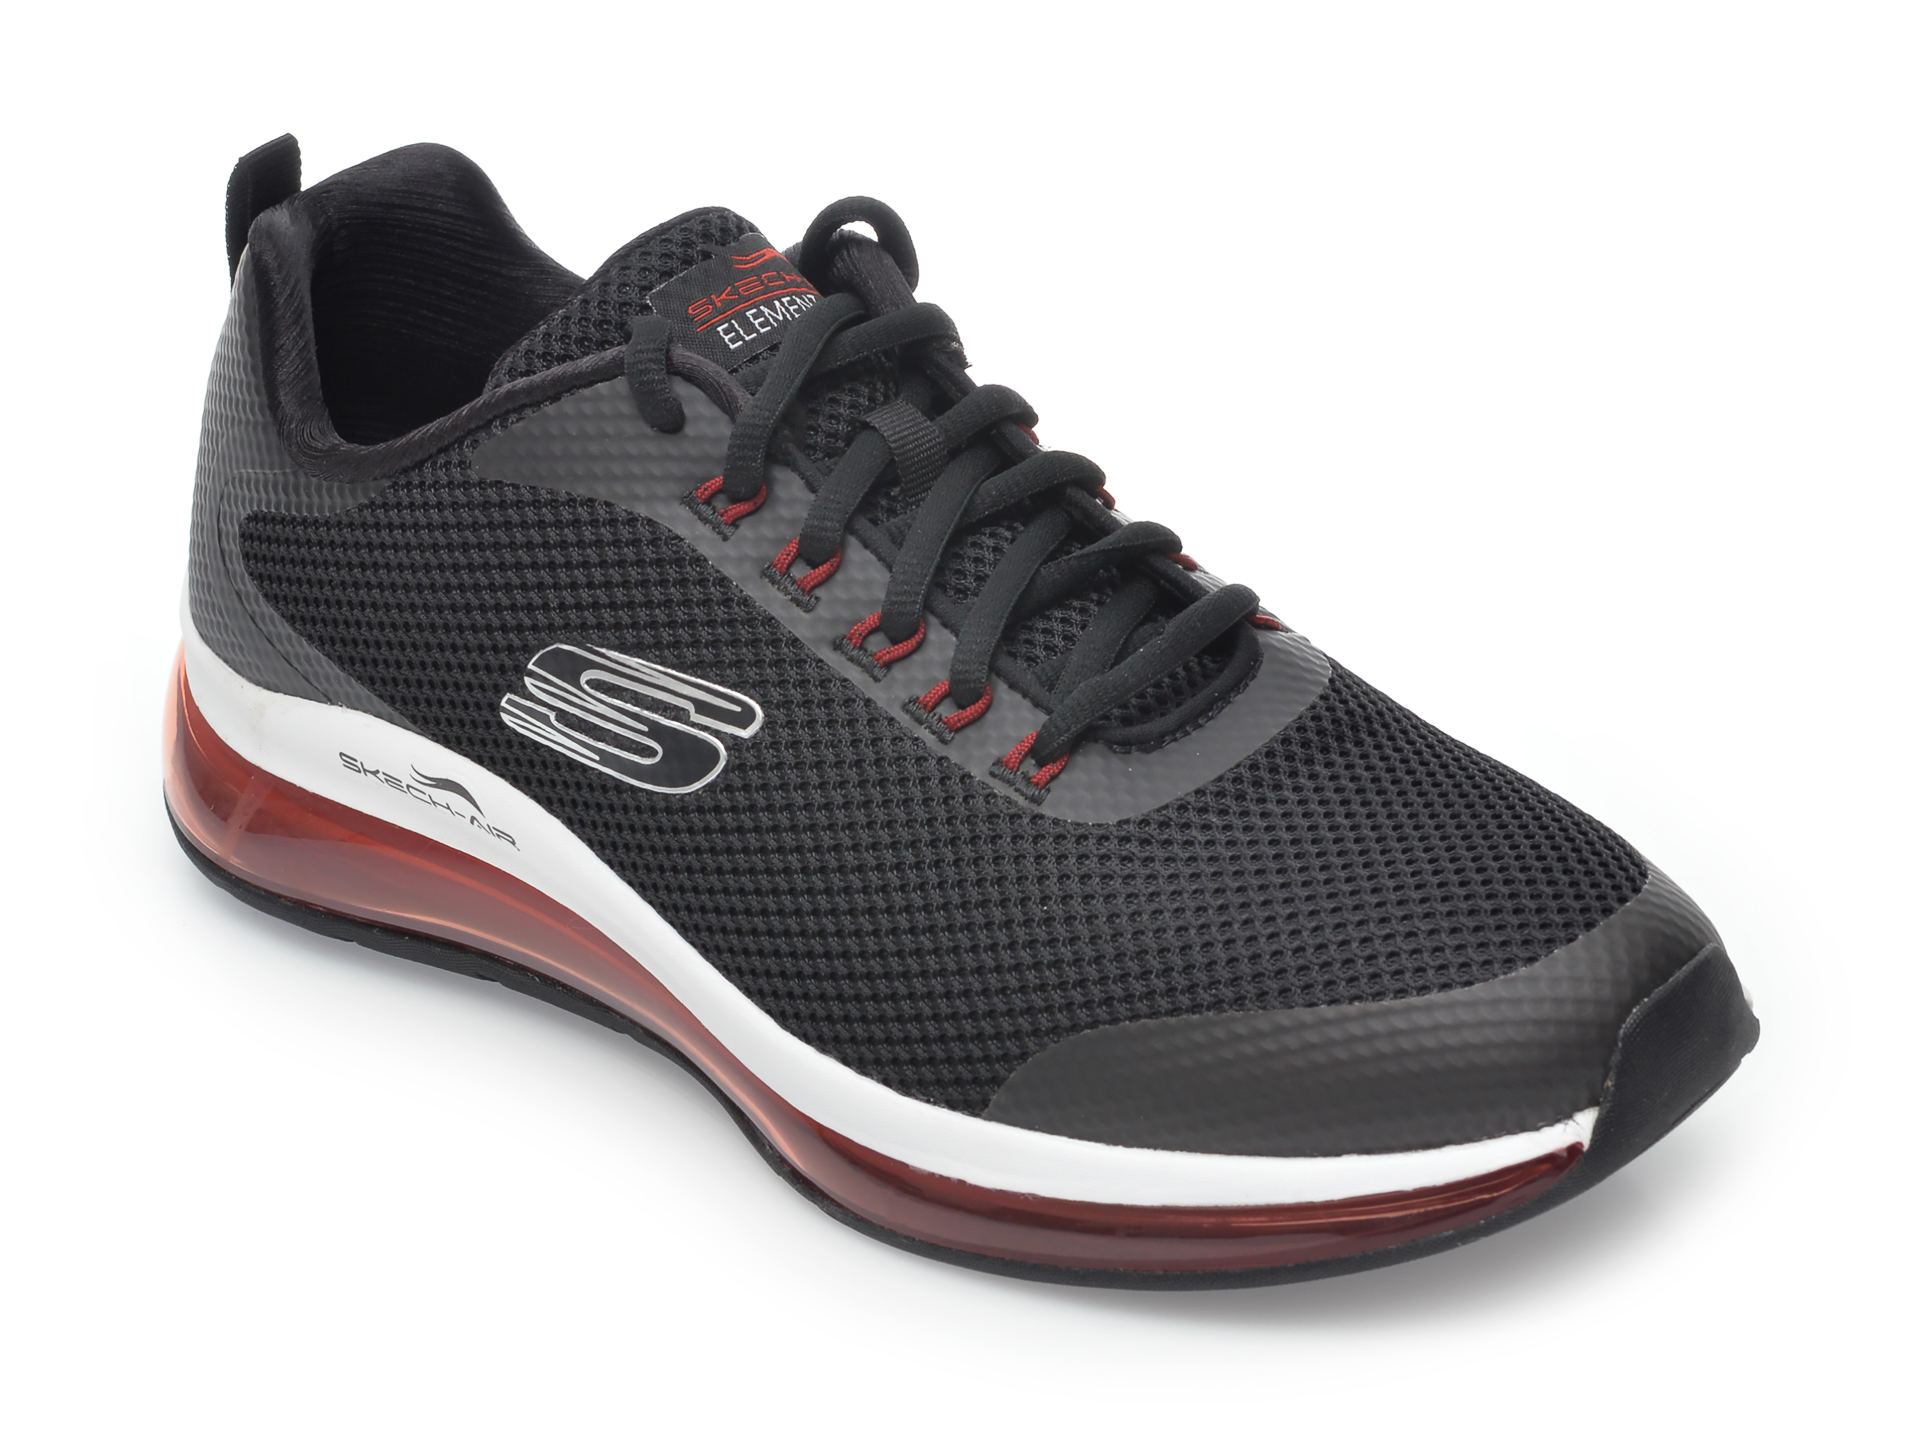 Pantofi sport SKECHERS negri, Skech-Air Element 2.0 Lomarc, din material textil imagine